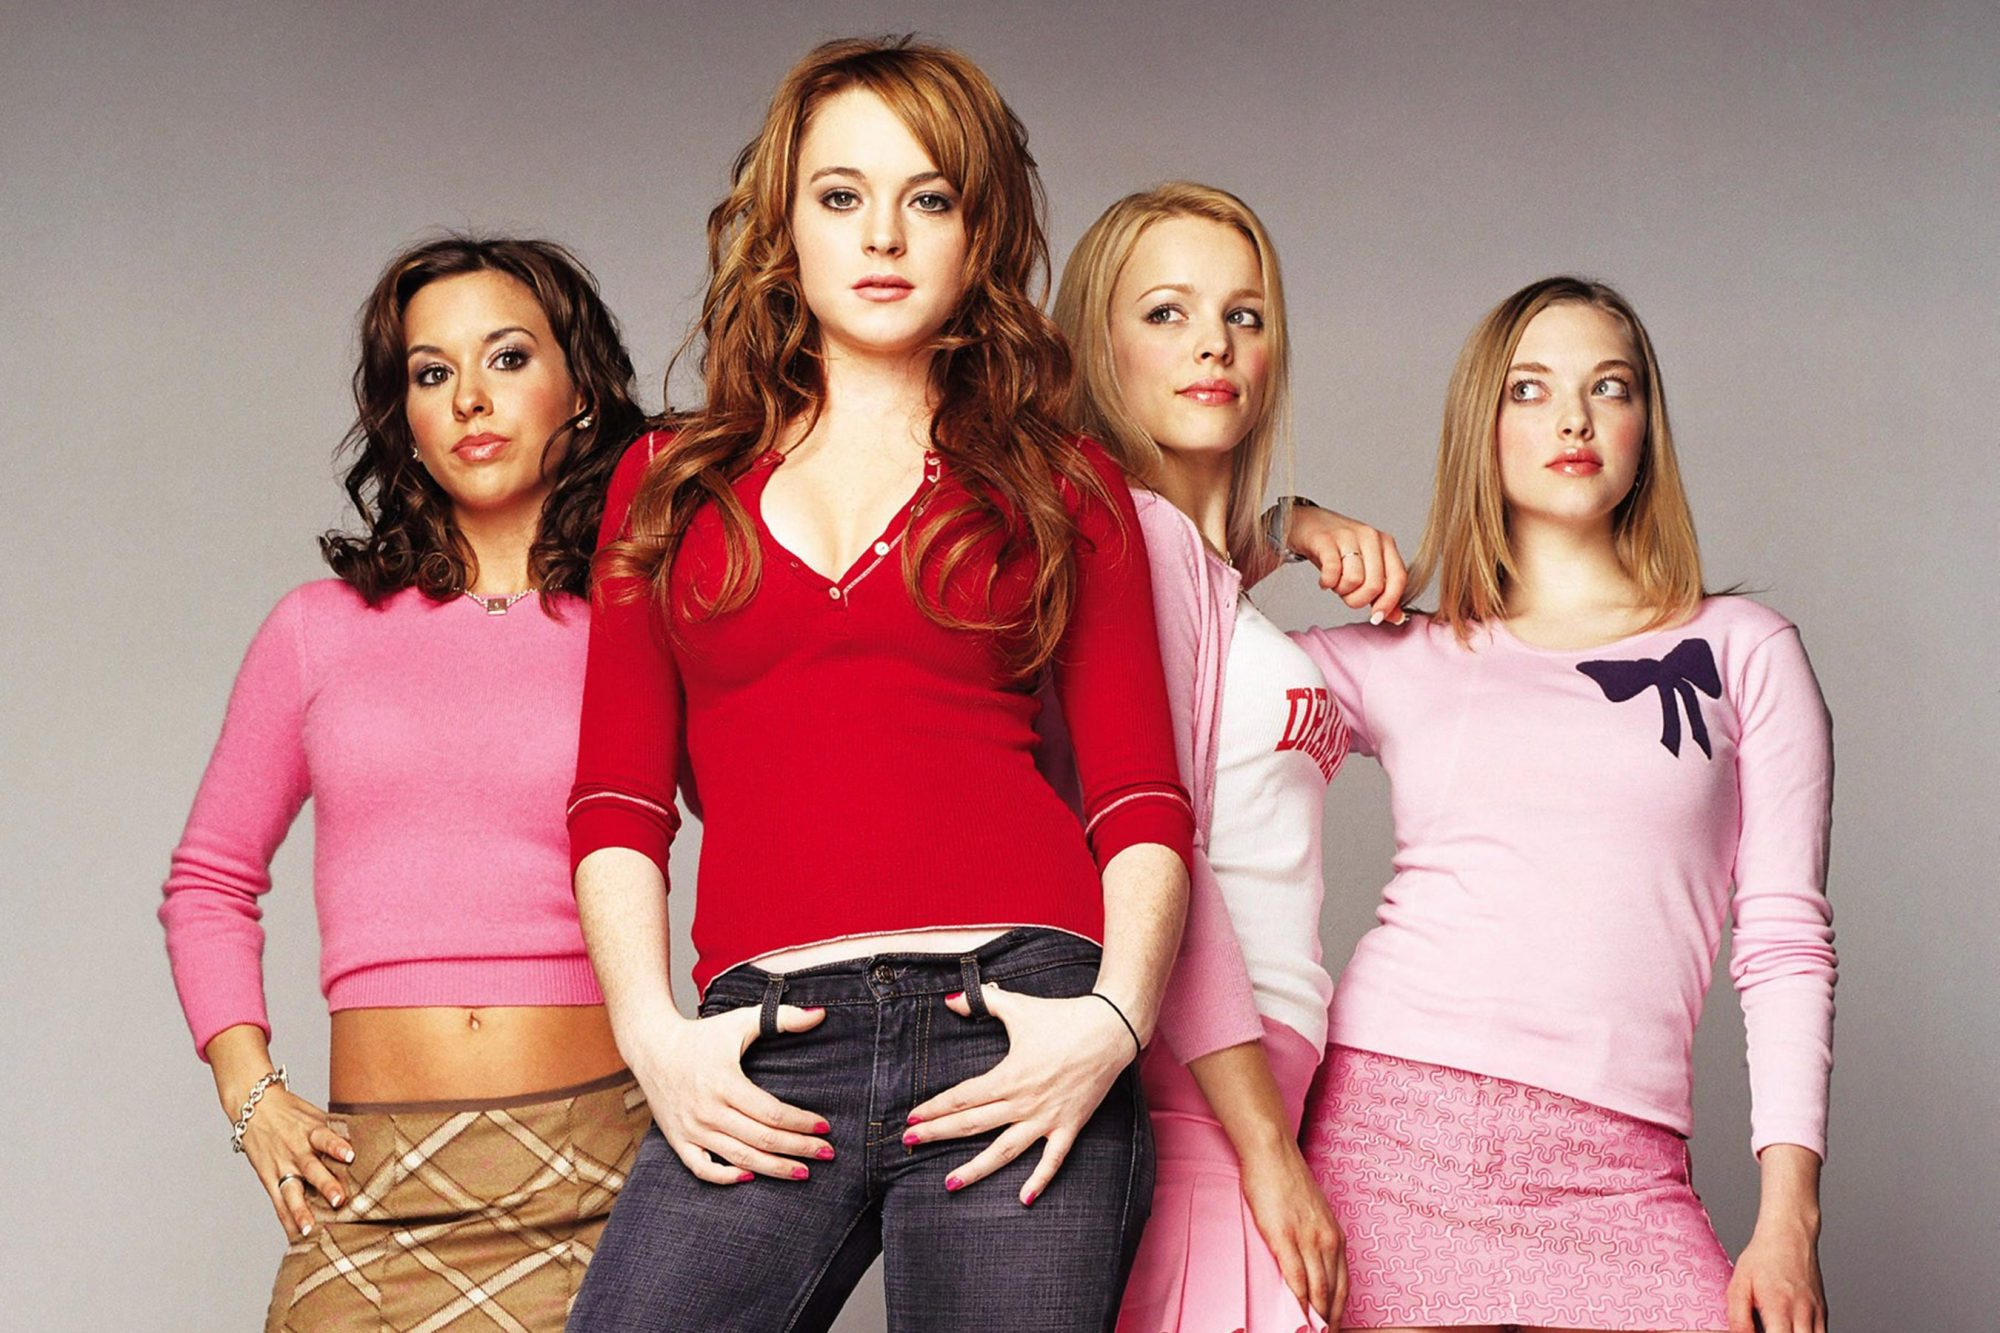 MEAN GIRLS, from left: Lacey Chabert, Lindsay Lohan, Rachel McAdams, Amanda Seyfried, 2004. u00A9Paramou